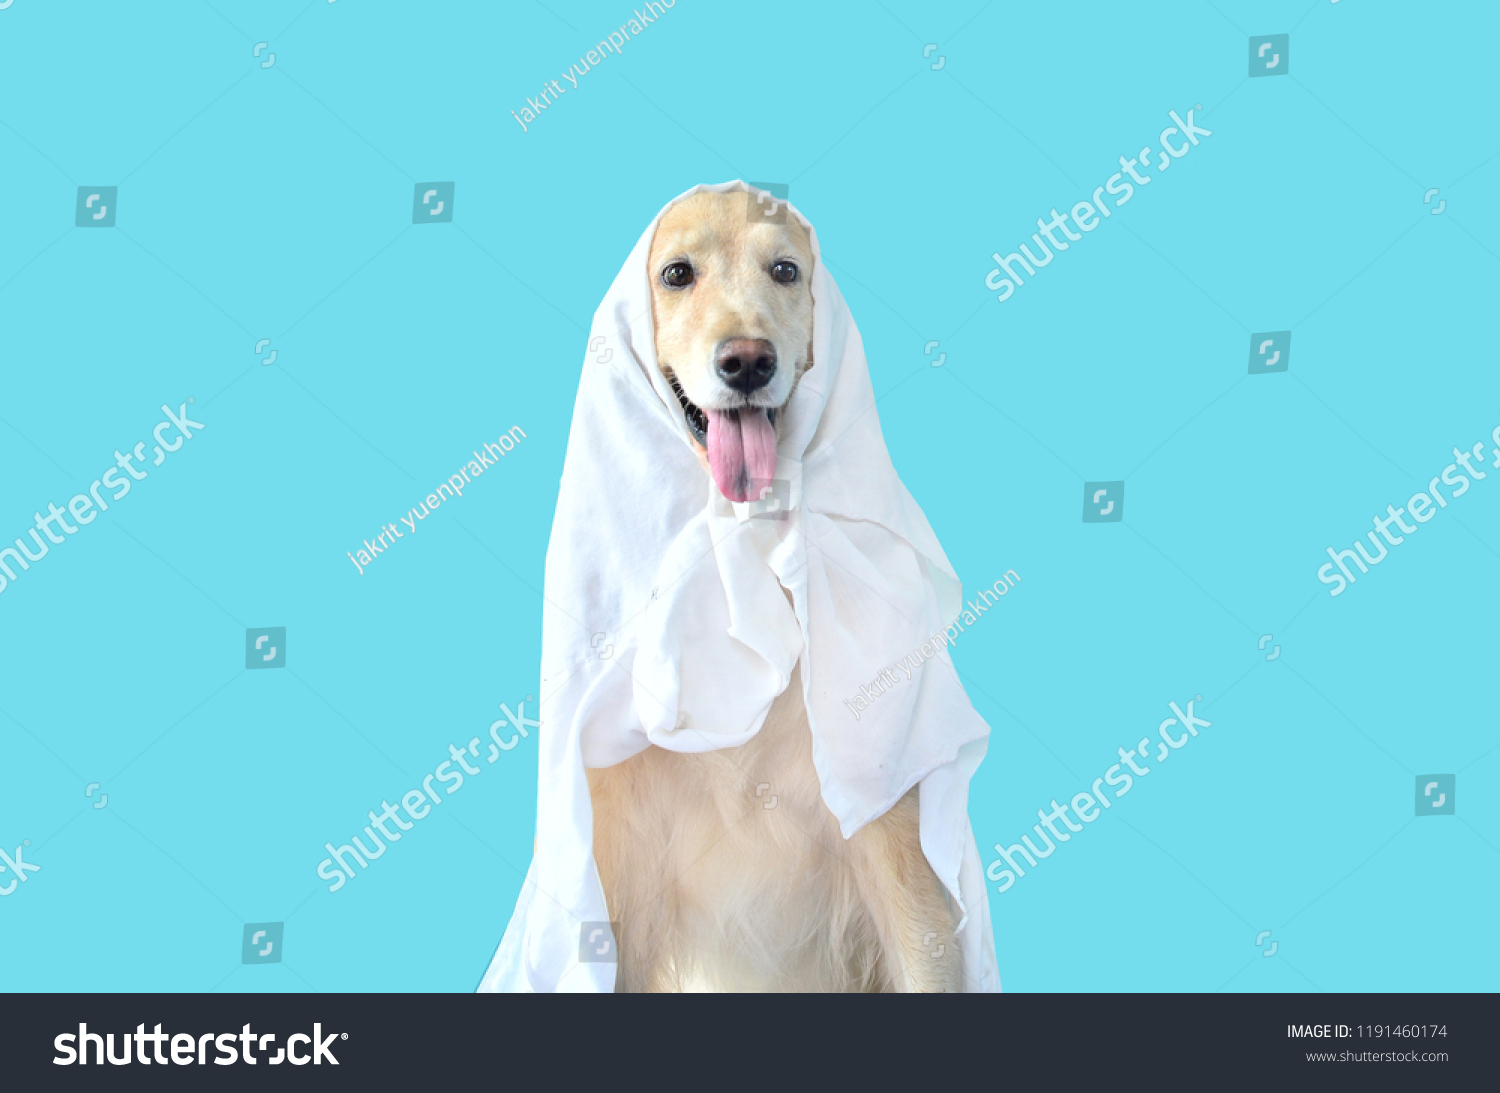 cute golden retriever dog halloween costume stock photo (edit now